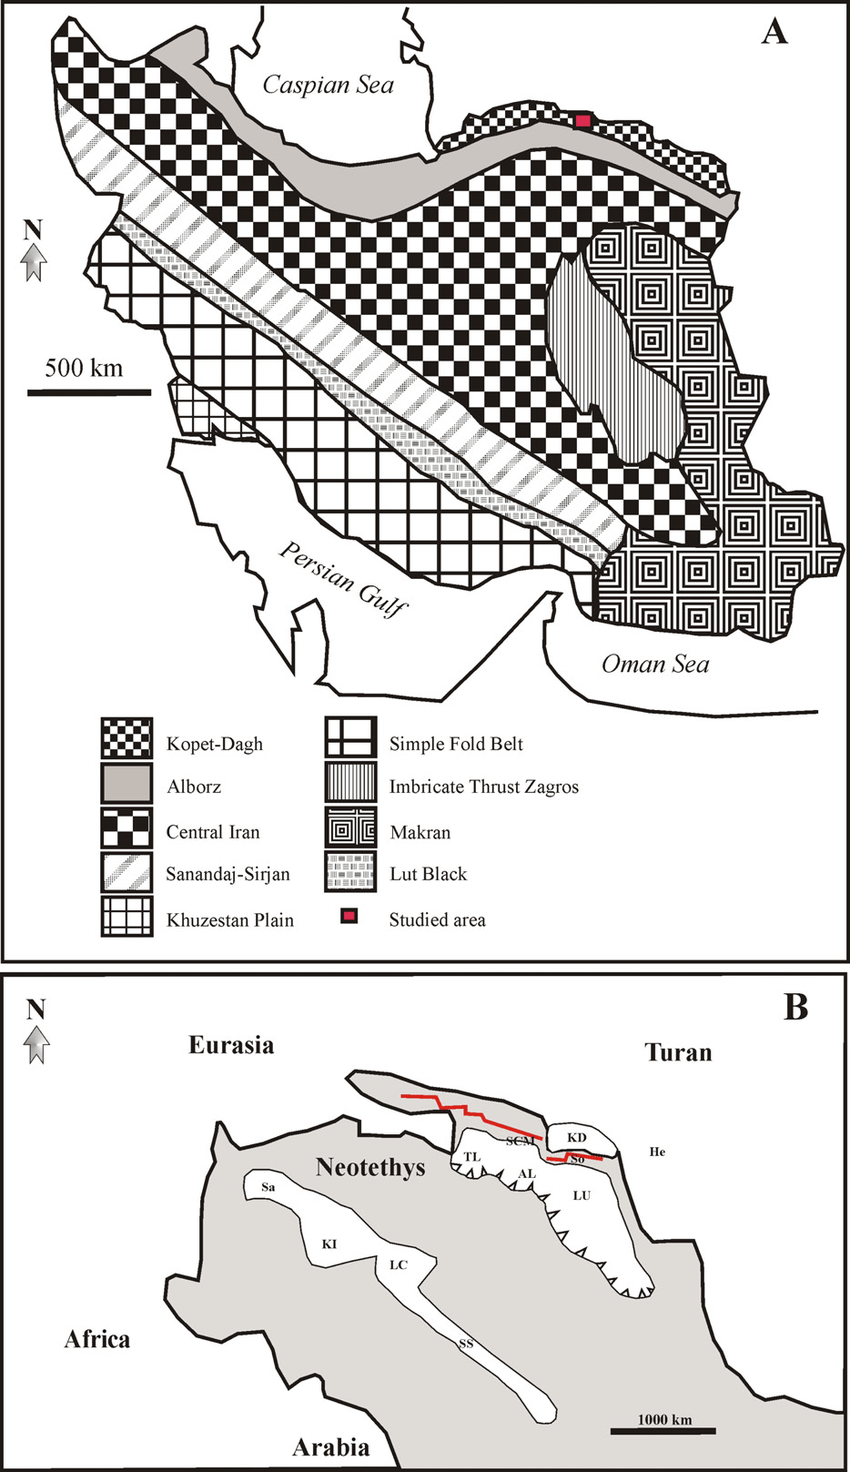 (A) Map of Iran showing the nine geological–structural